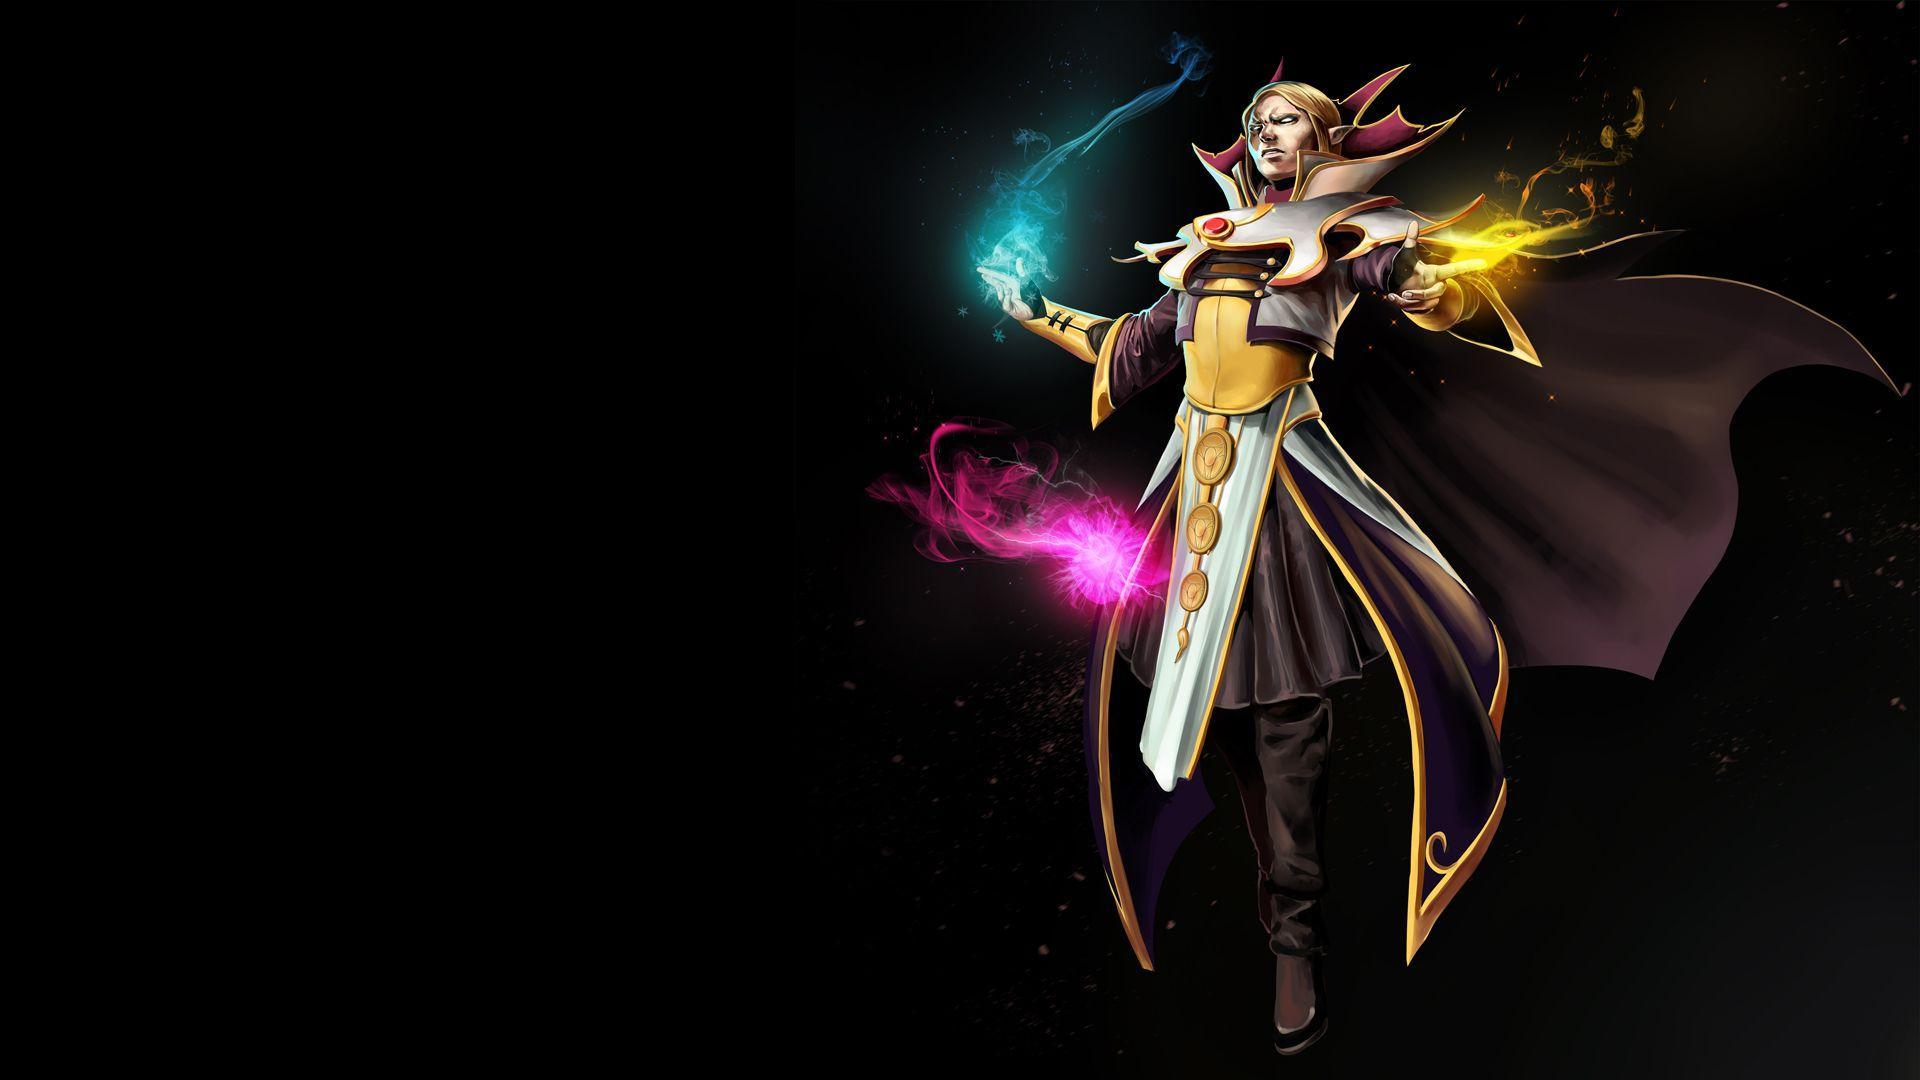 Invoker Dota  Wallpaper Wallpapersafari